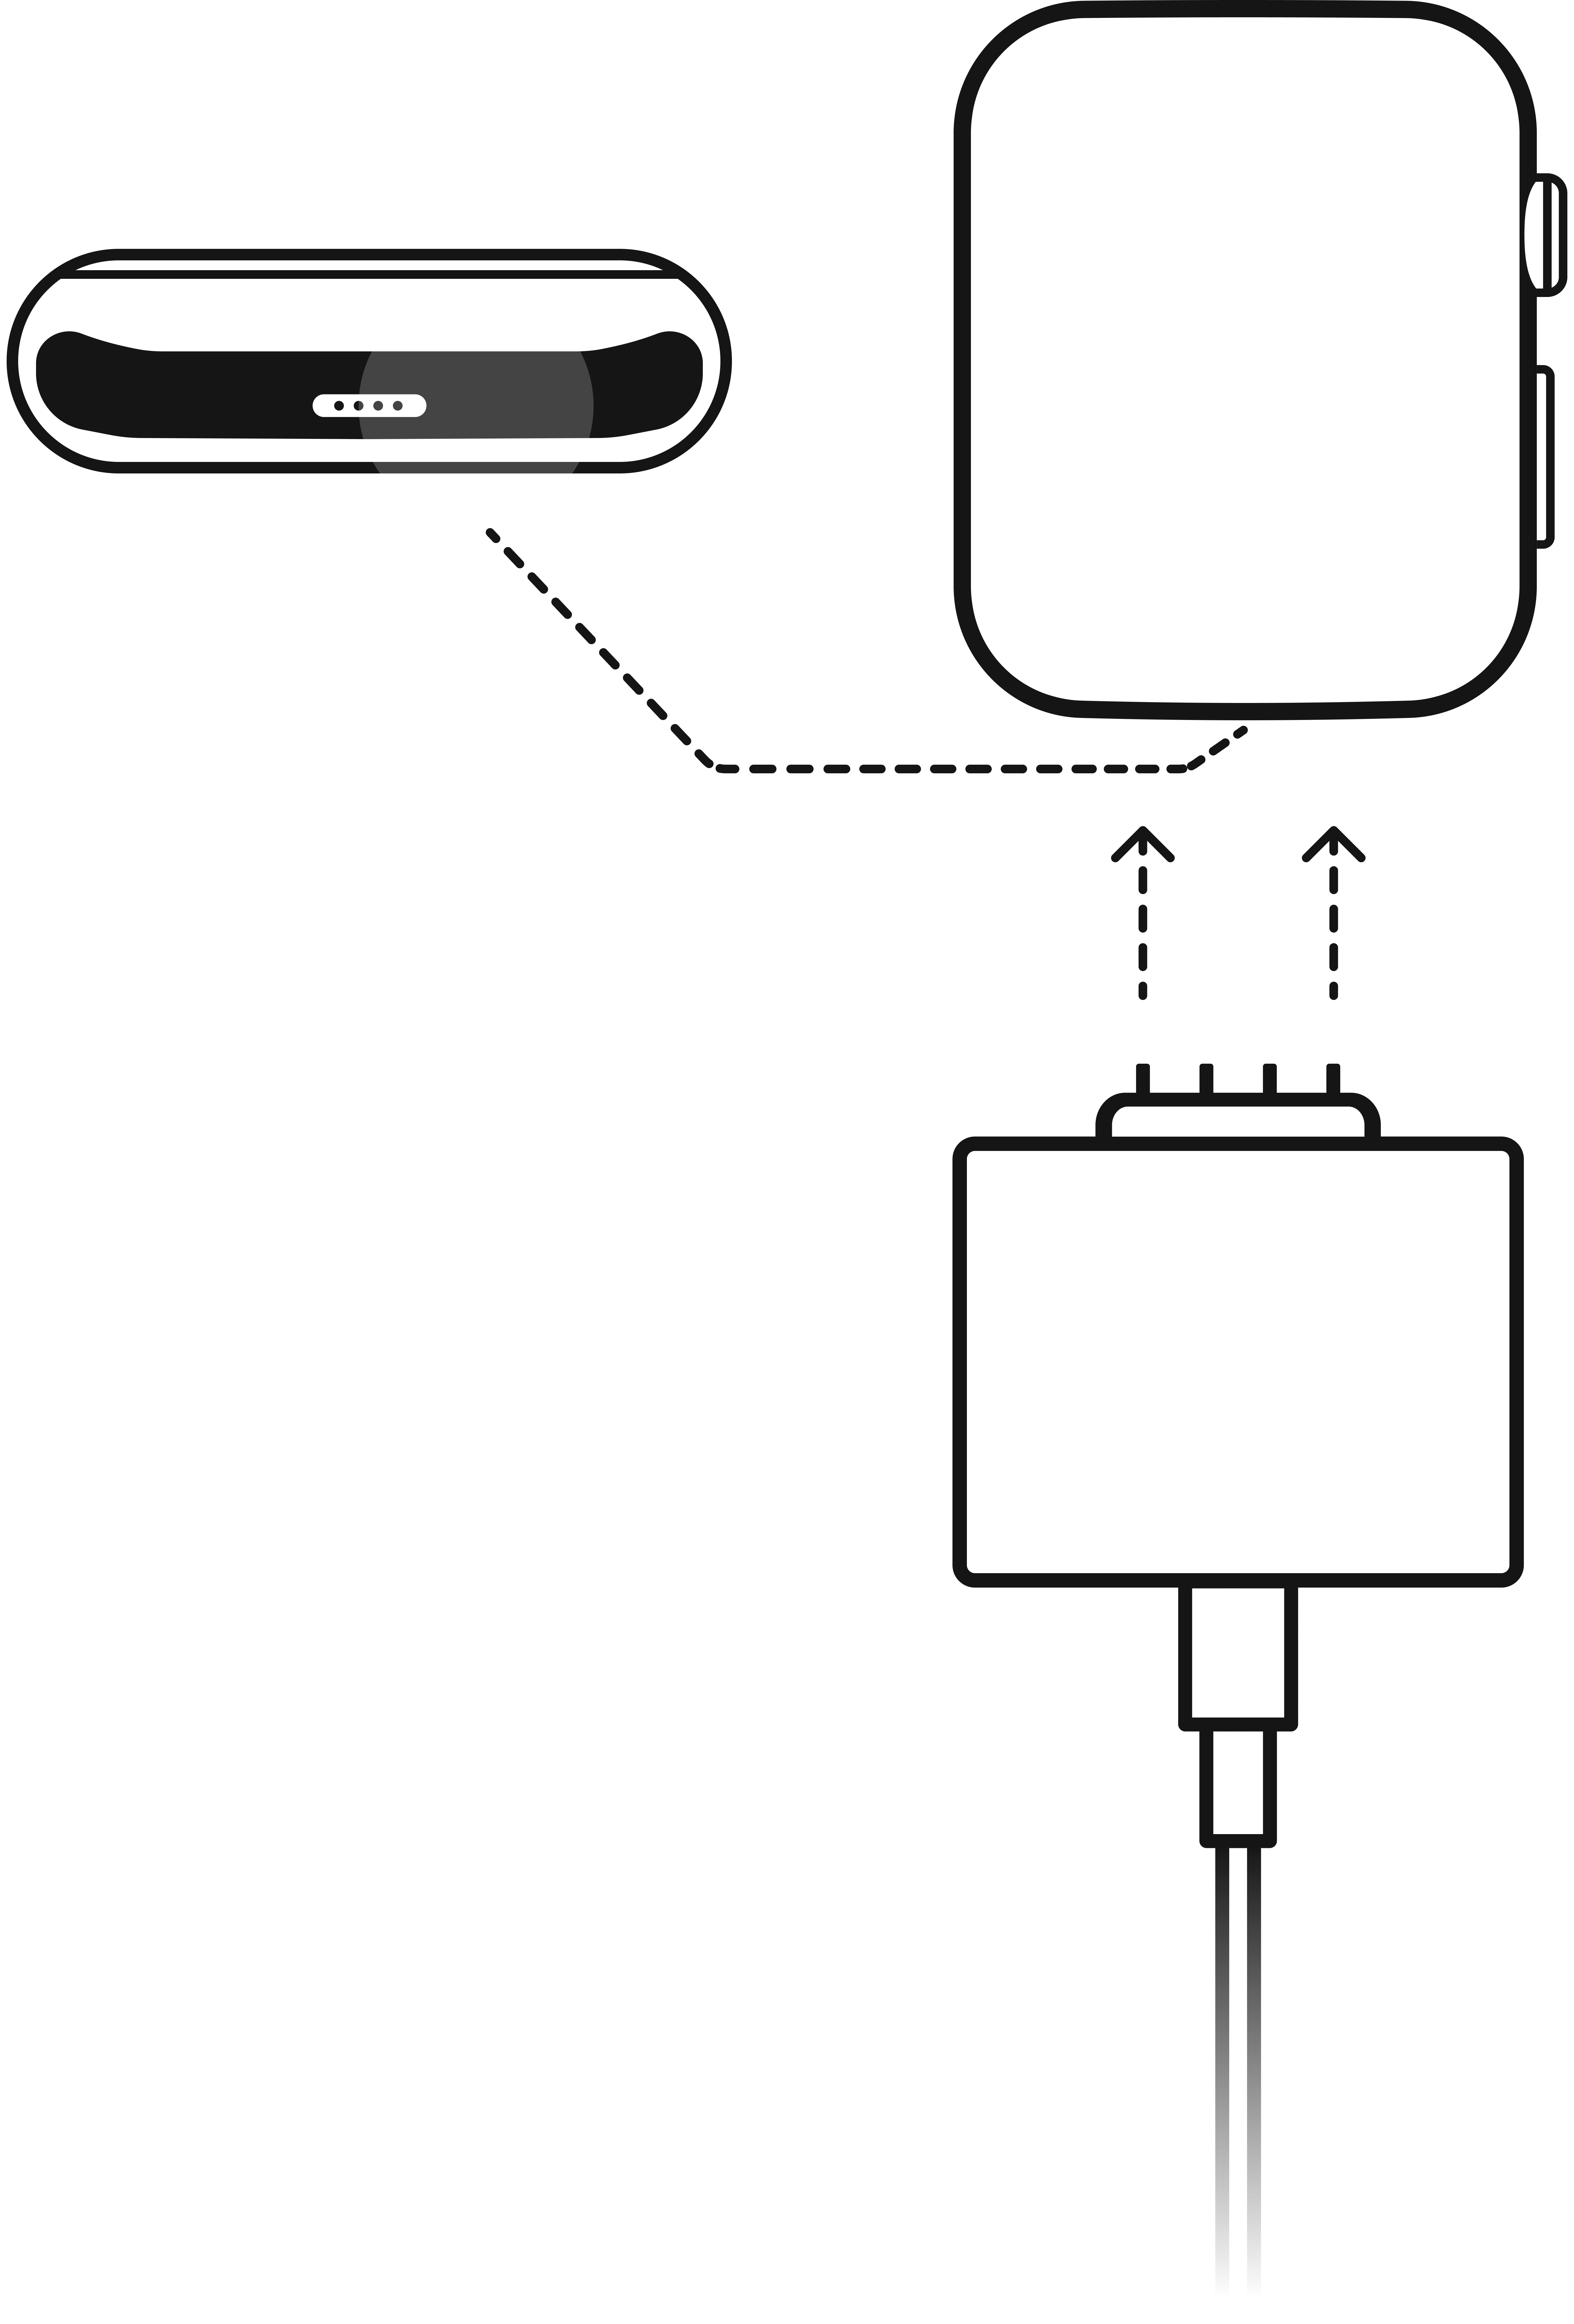 Connect your Apple Watch via Data Cable adapter